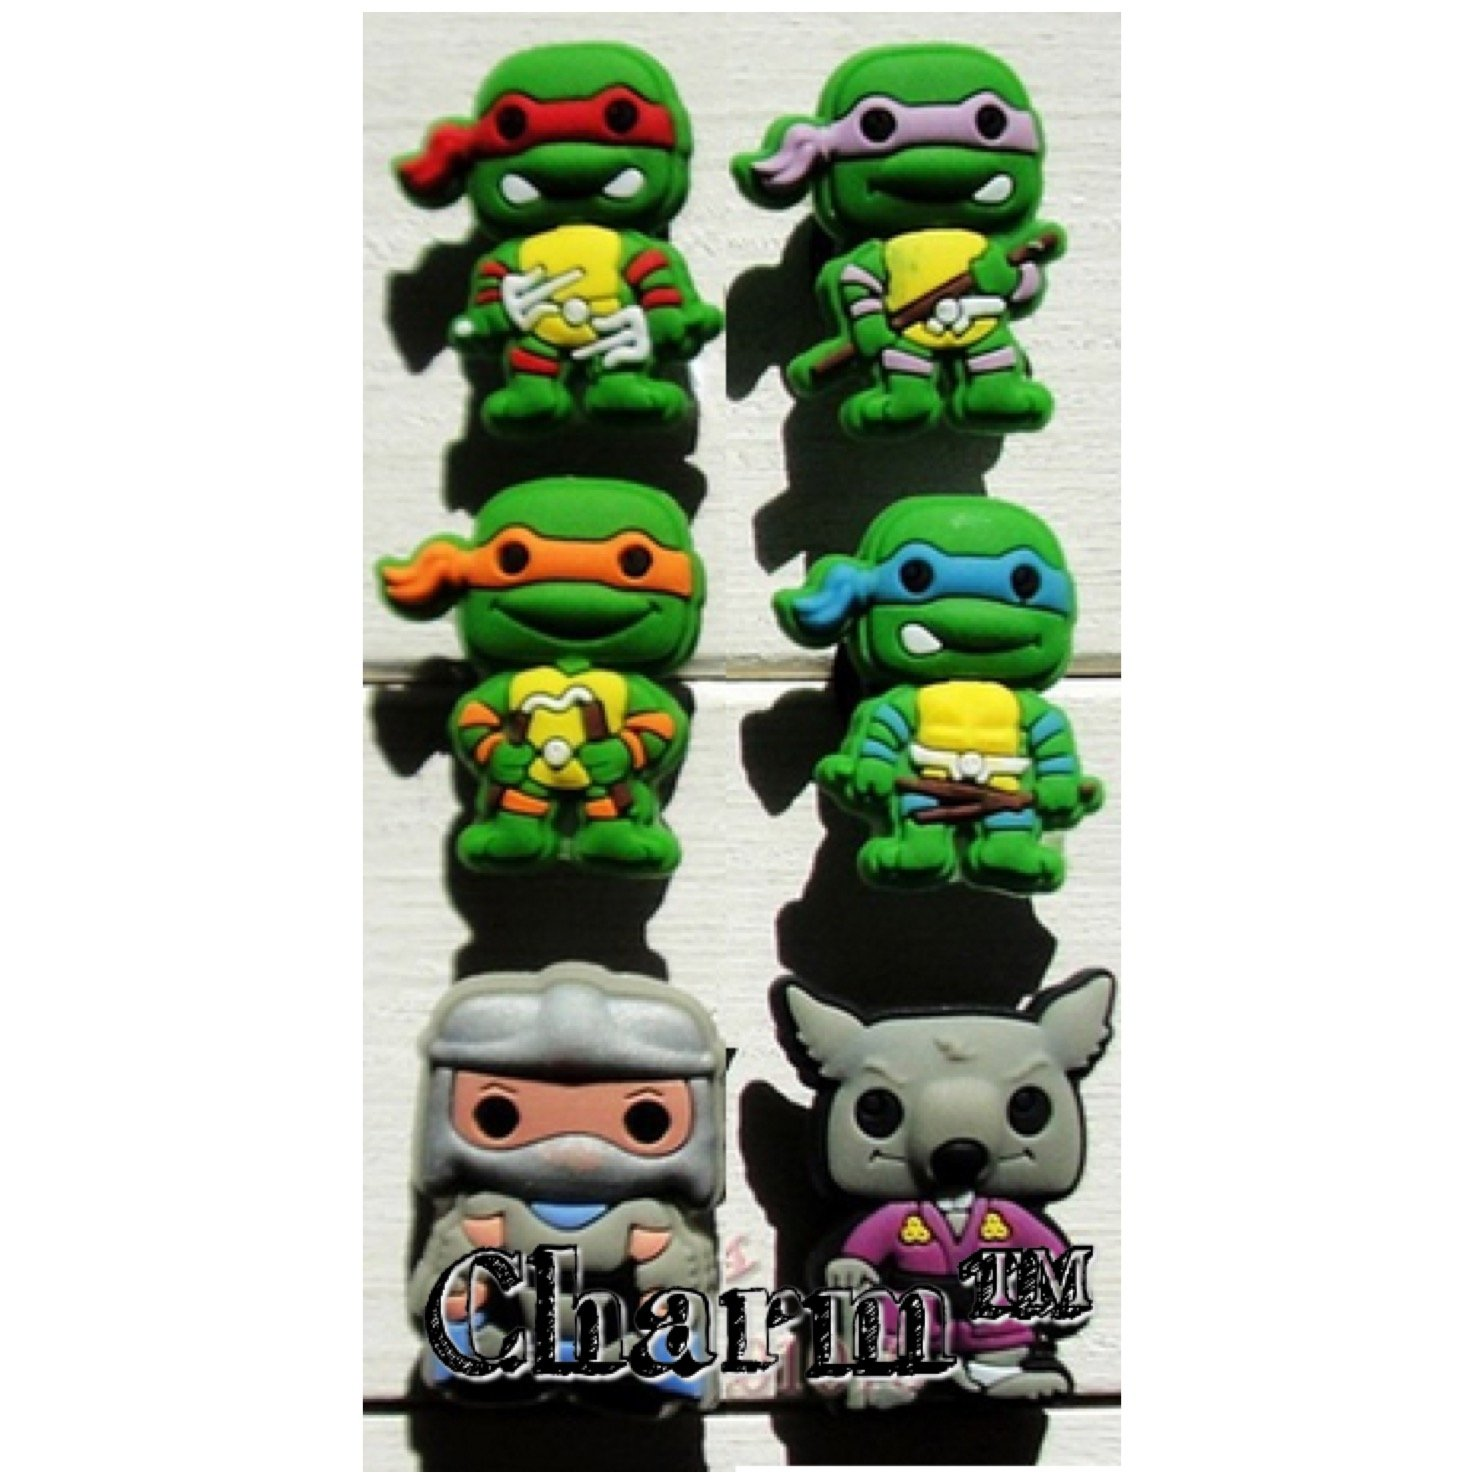 Turtles Set of 6 Shoe Charms Assorted PVC Crocs Natives (Generic) Boy Birthday Party Favors by CharmTM